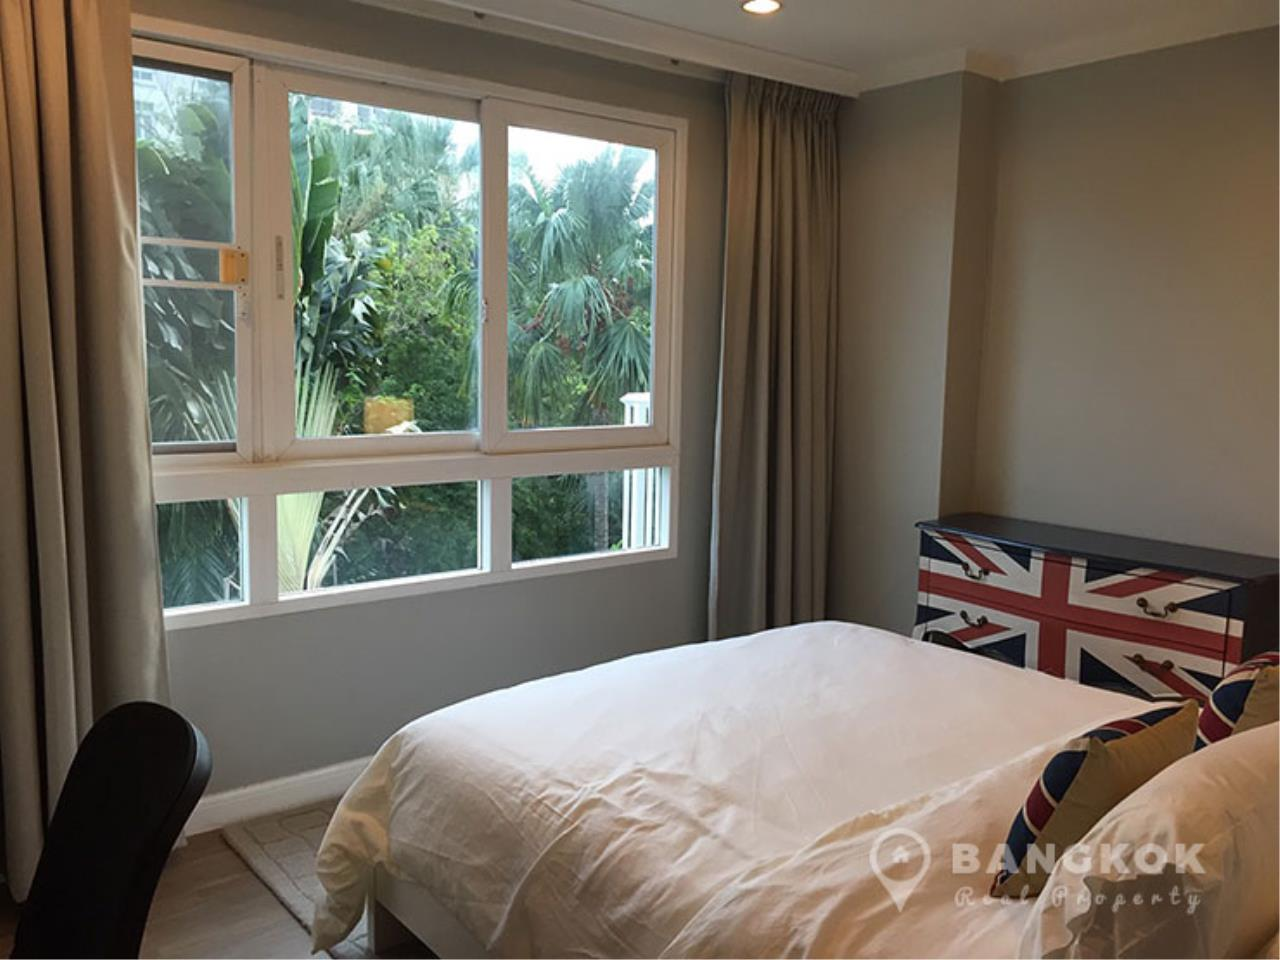 Bangkok Real Property Agency's Baan Siri Yenakard | Spacious Renovated 2 Bed 2 Bath near MRT  8